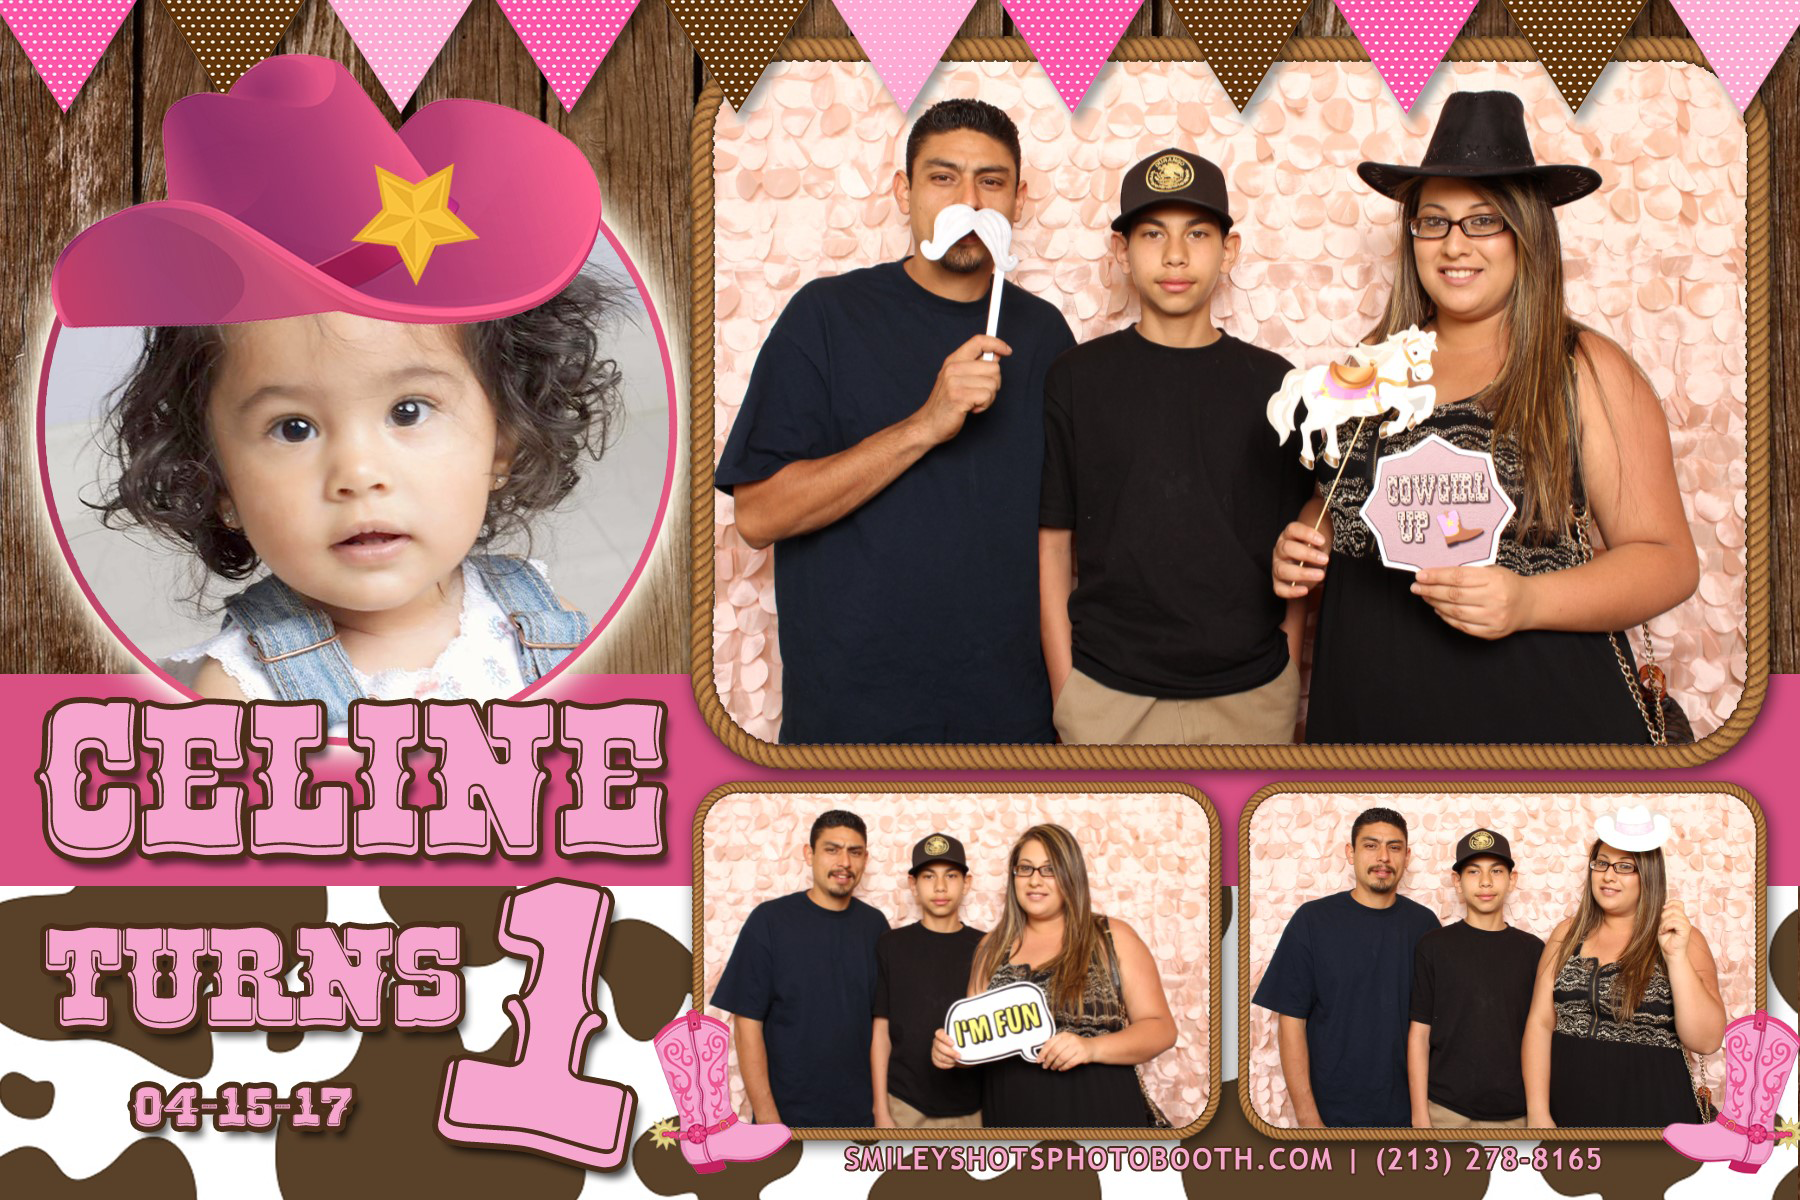 Celine turns 1 Smiley Shots Photo Booth Photobooth (24).png